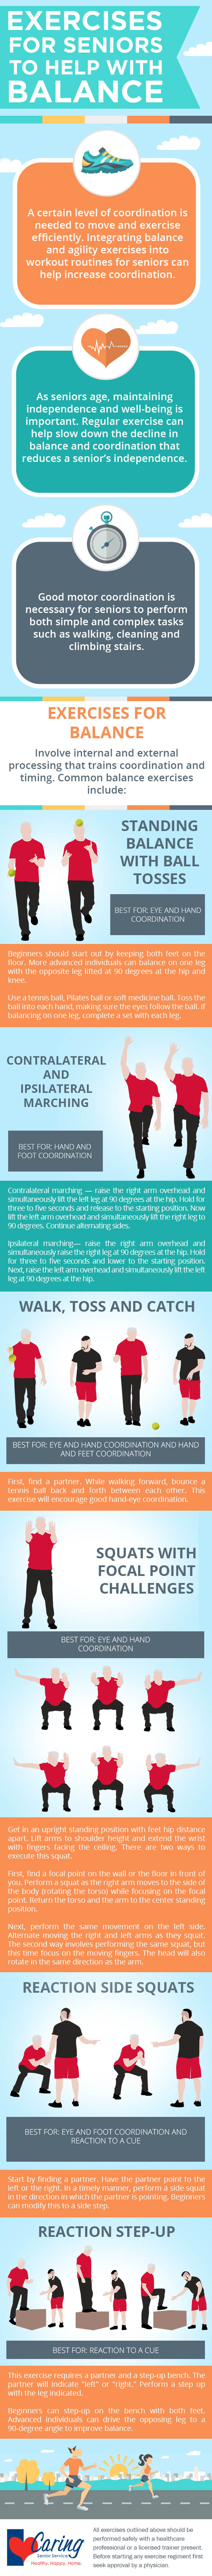 Exercises for Senior Balance  Infographic-Final